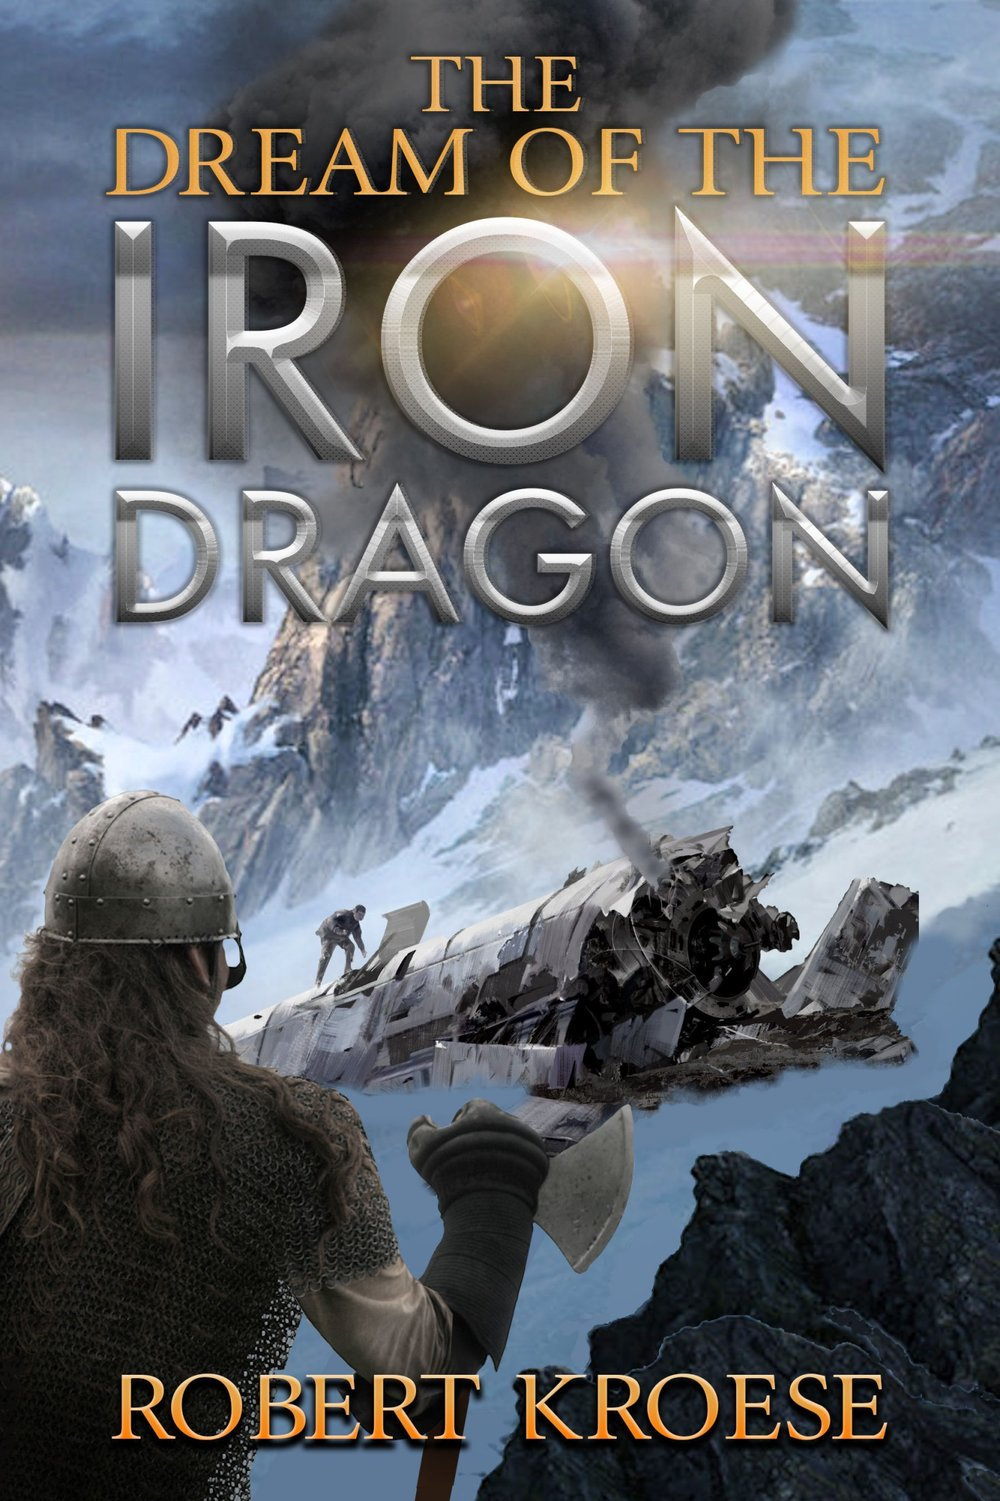 The Dream of the Iron Dragon Book Review — With Both Hands